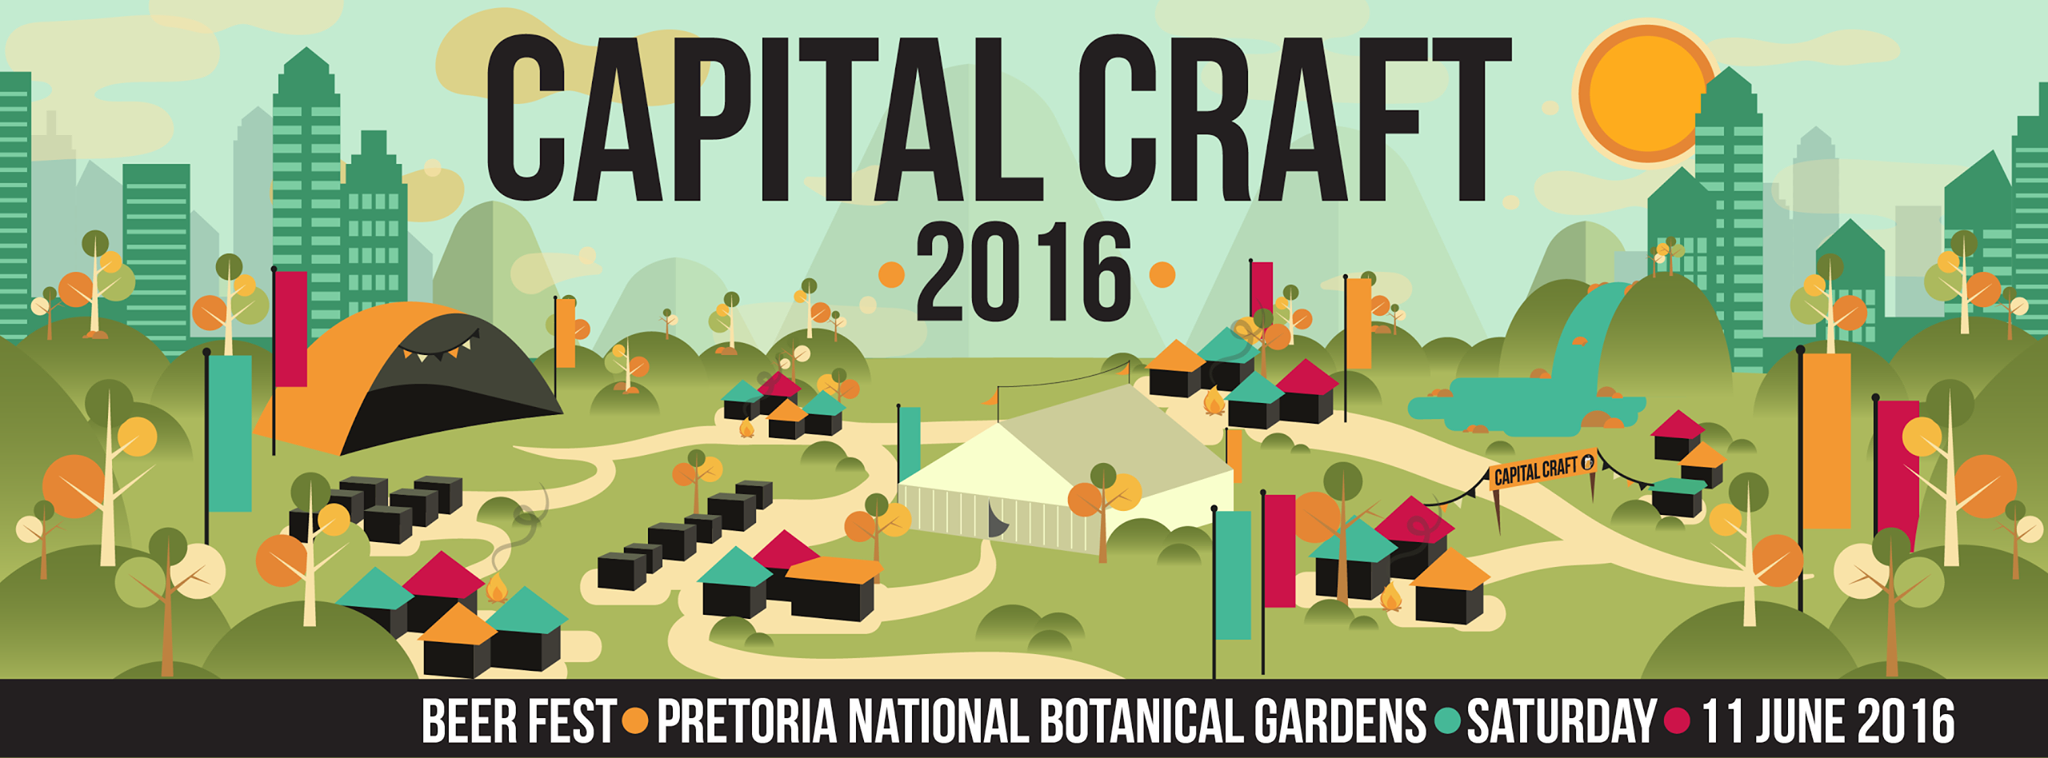 Capital Craft Beer Festival 2016 – Win Tickets!